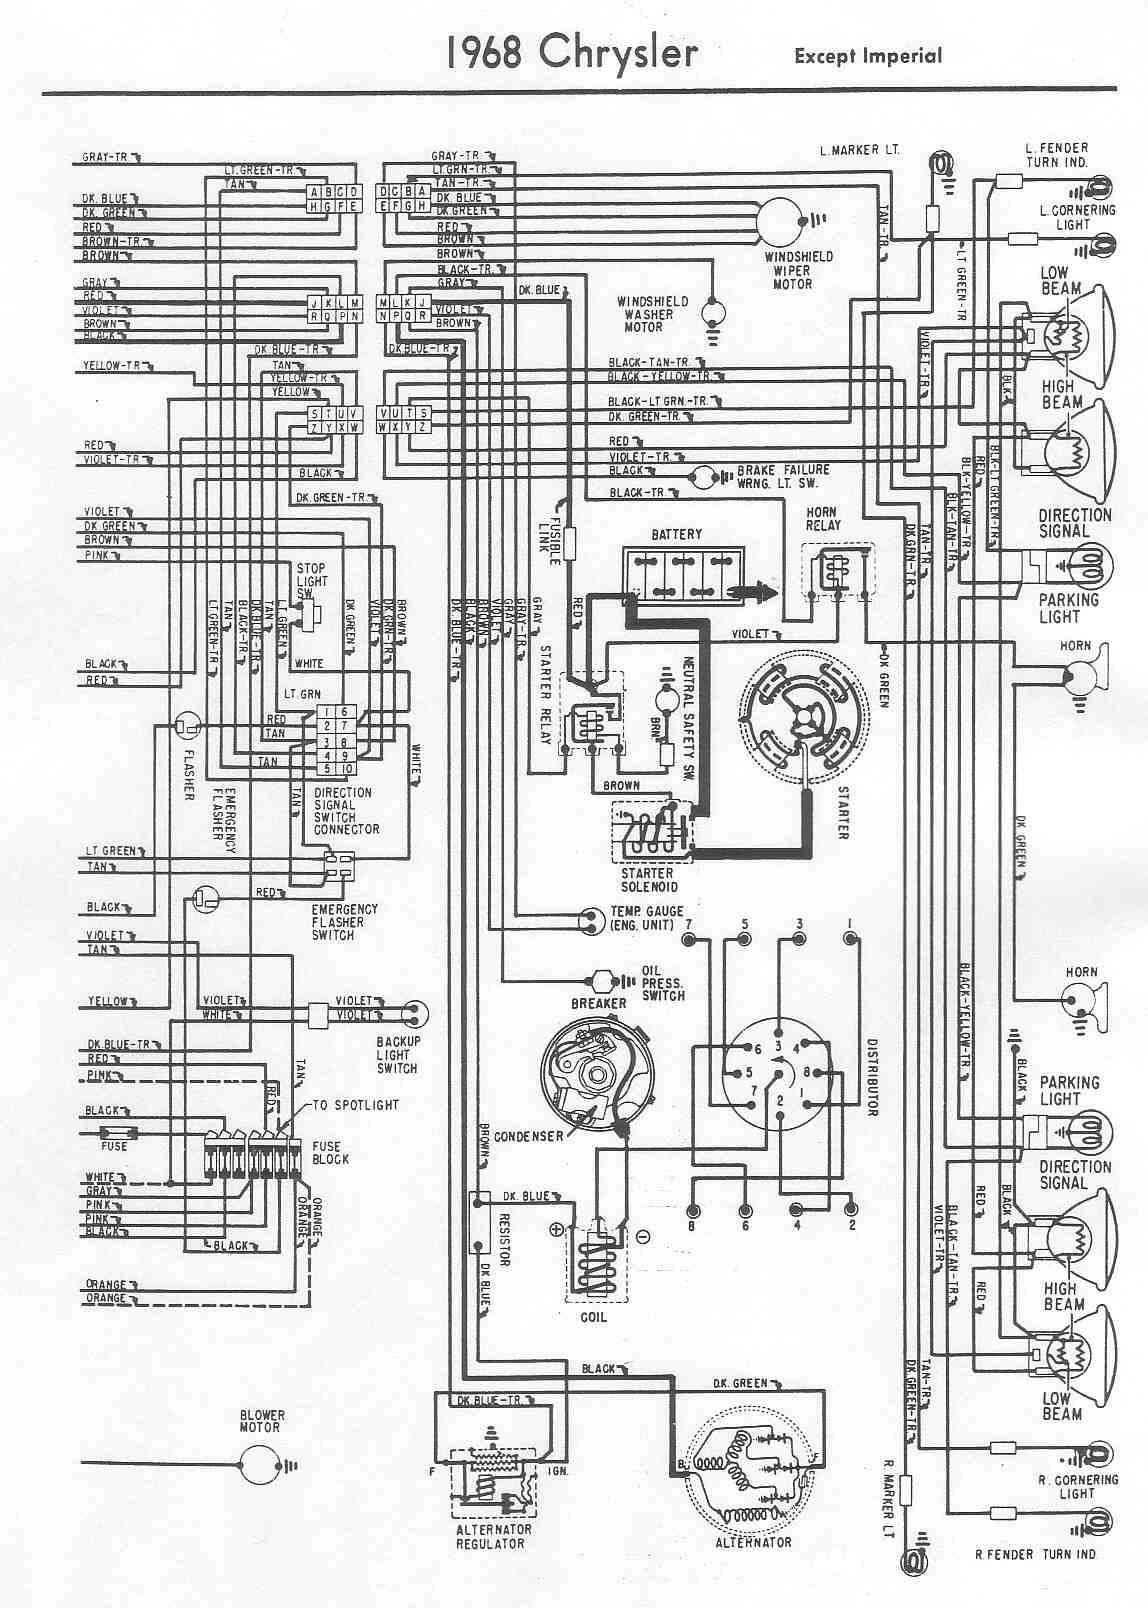 1966 Gto Wiper Wiring Diagram Schematic Trusted Wiring Diagram \u2022 1970  GTO AC Parts 1970 Gto Dash Wiring